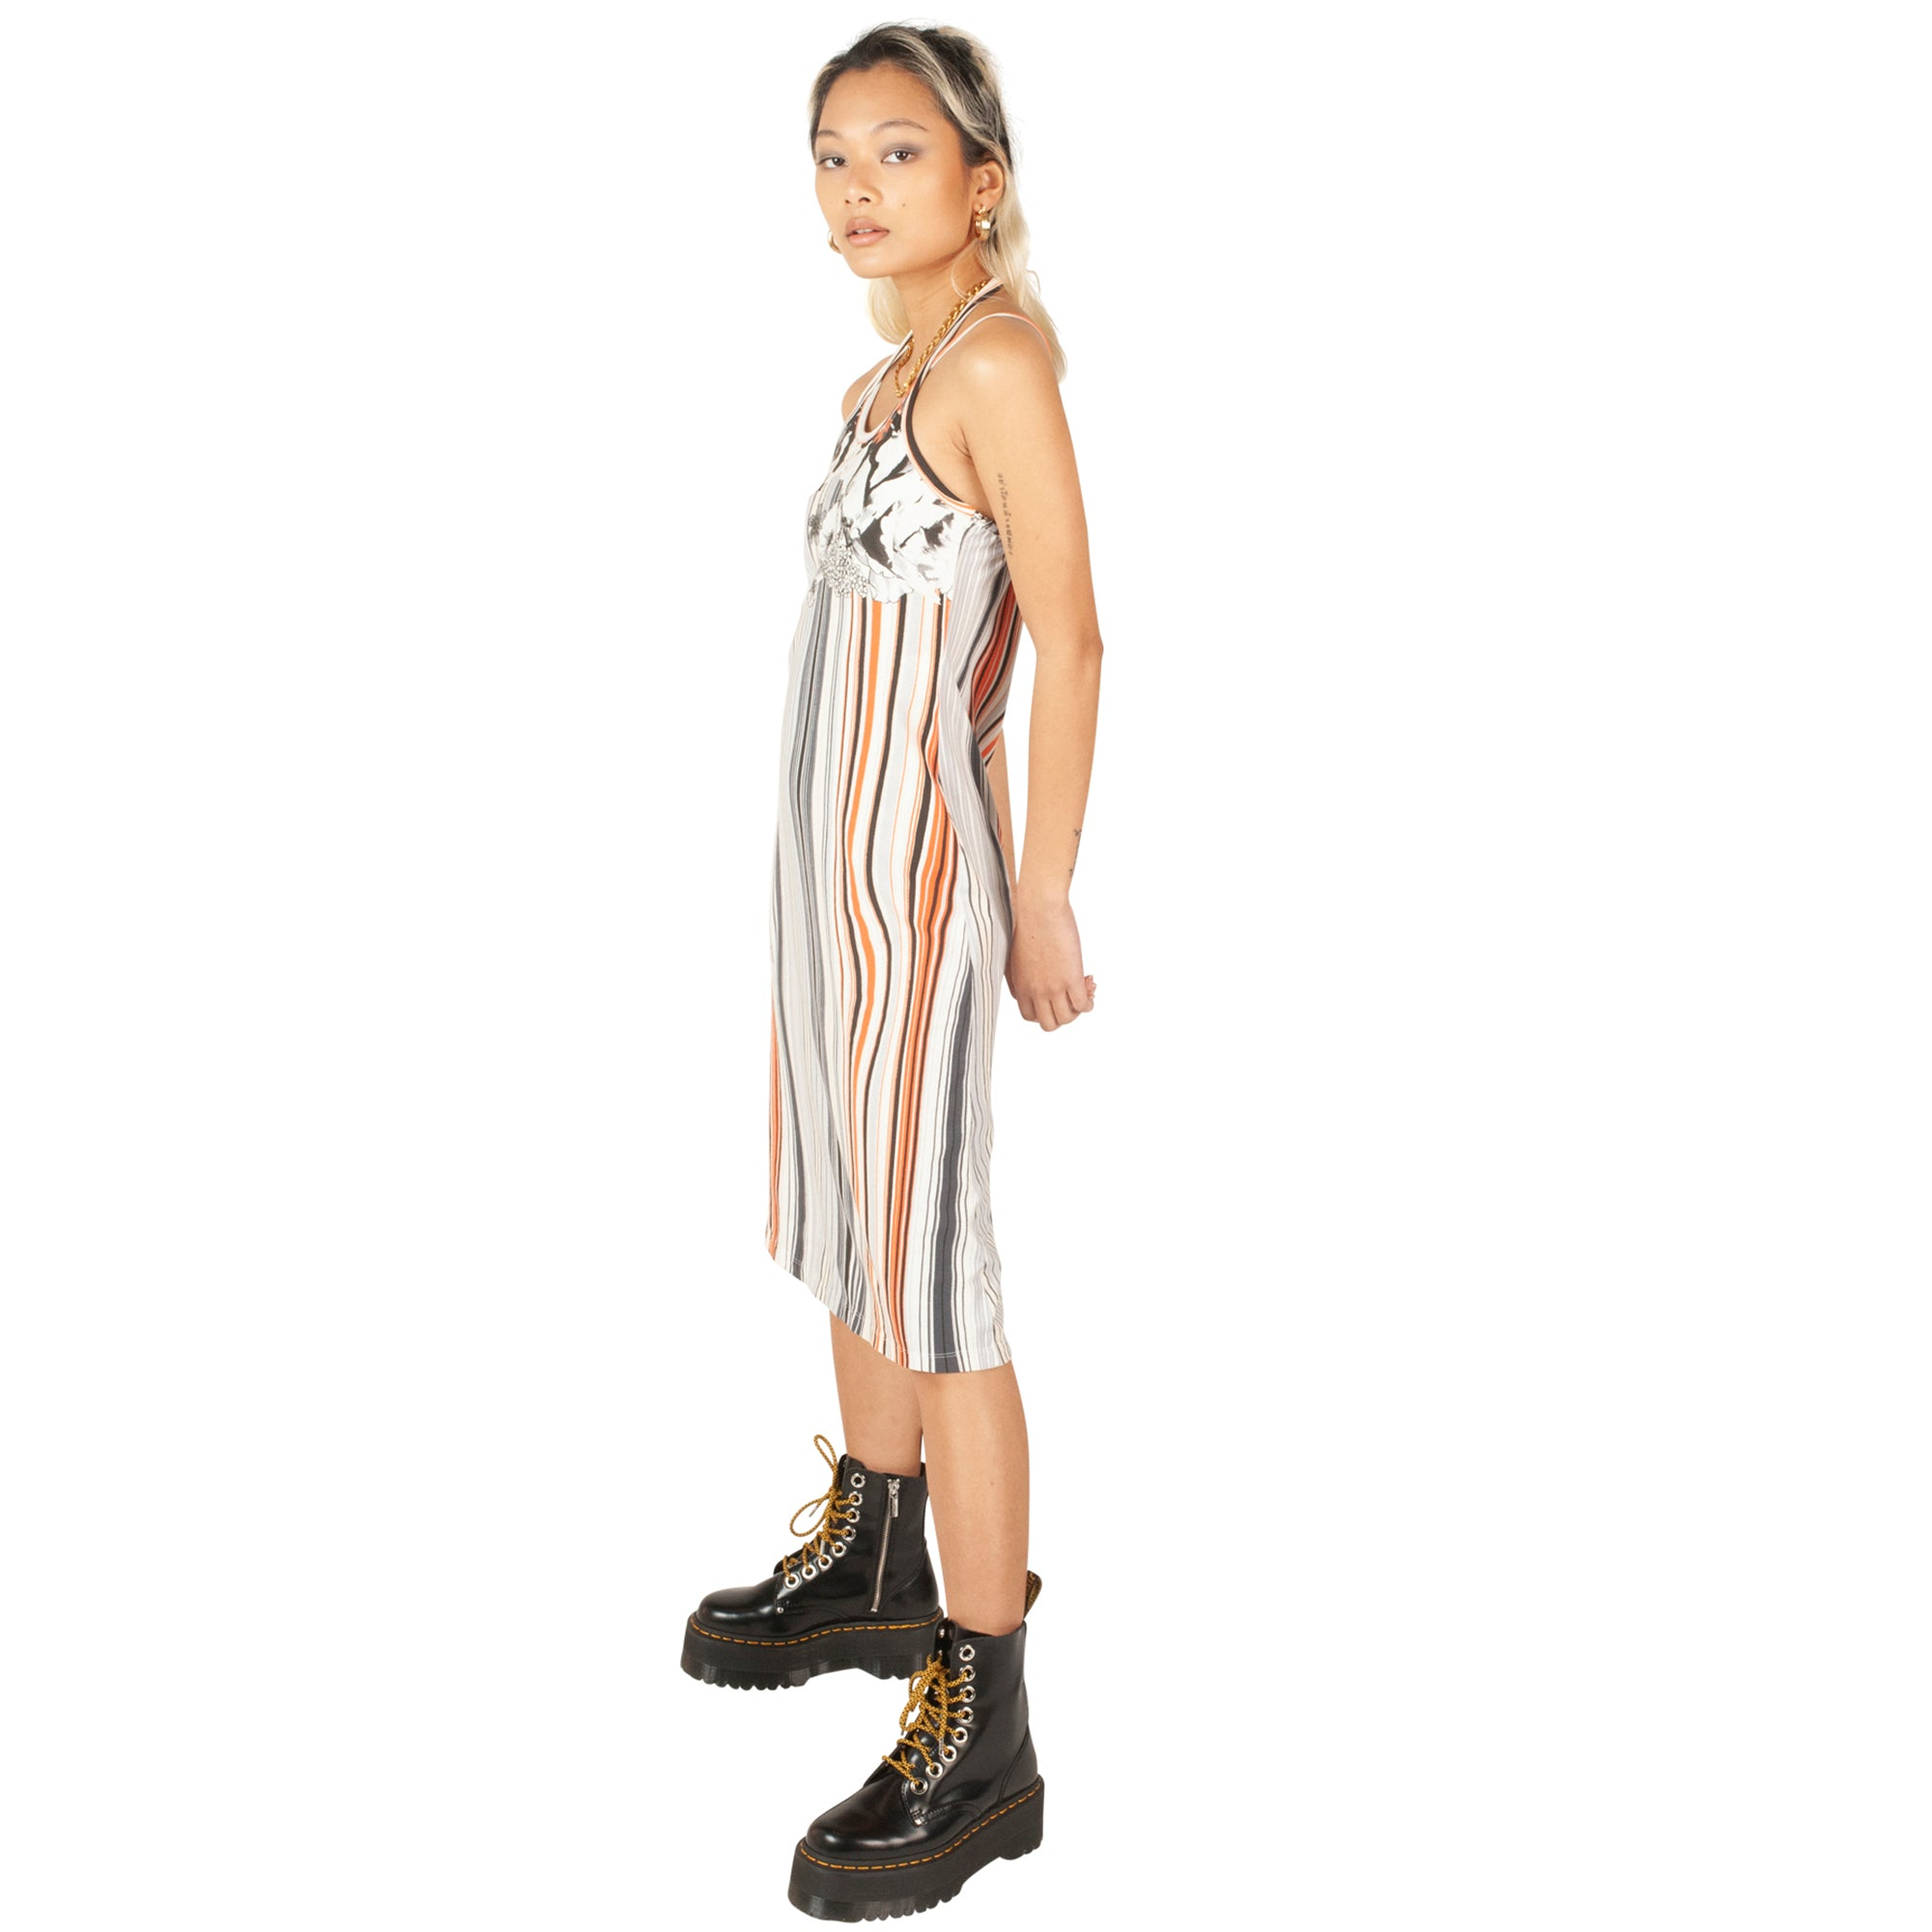 Roberto Cavalli Stripe Dress (Multi) UK 6-8